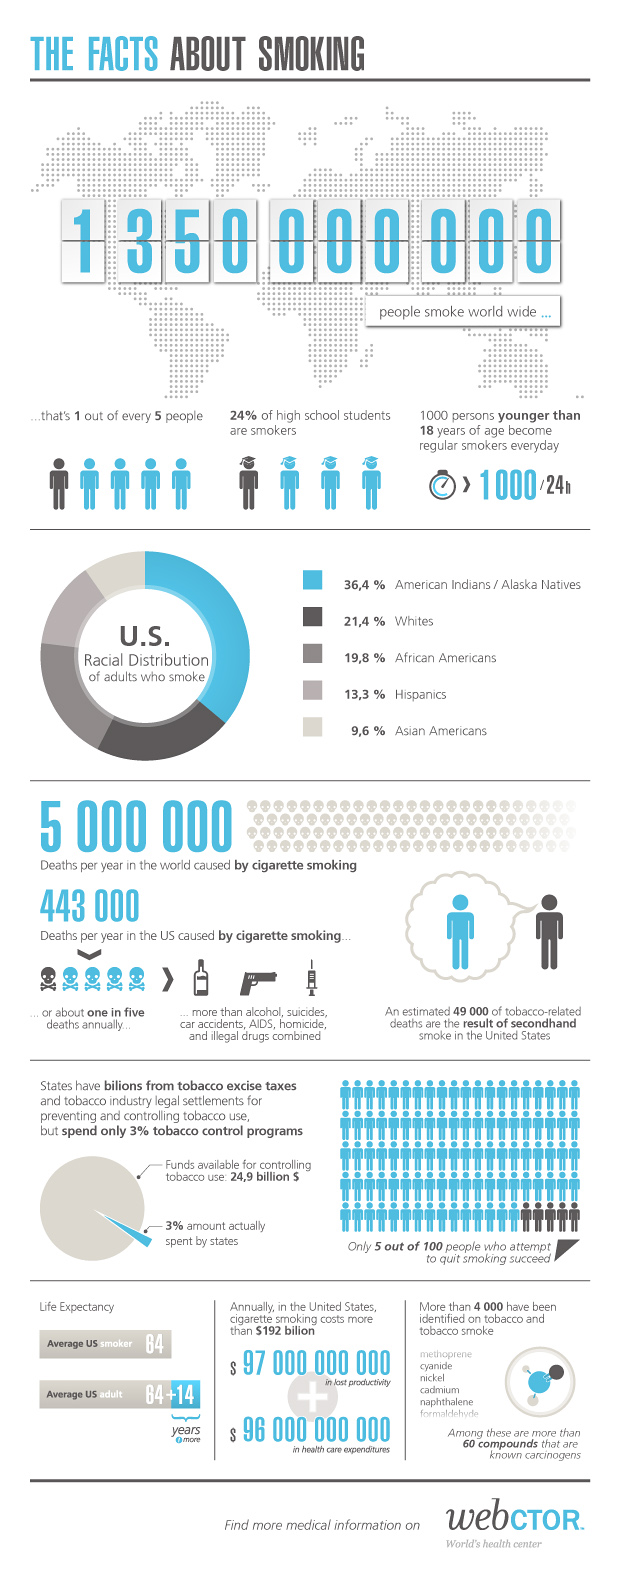 Global Facts About Smoking